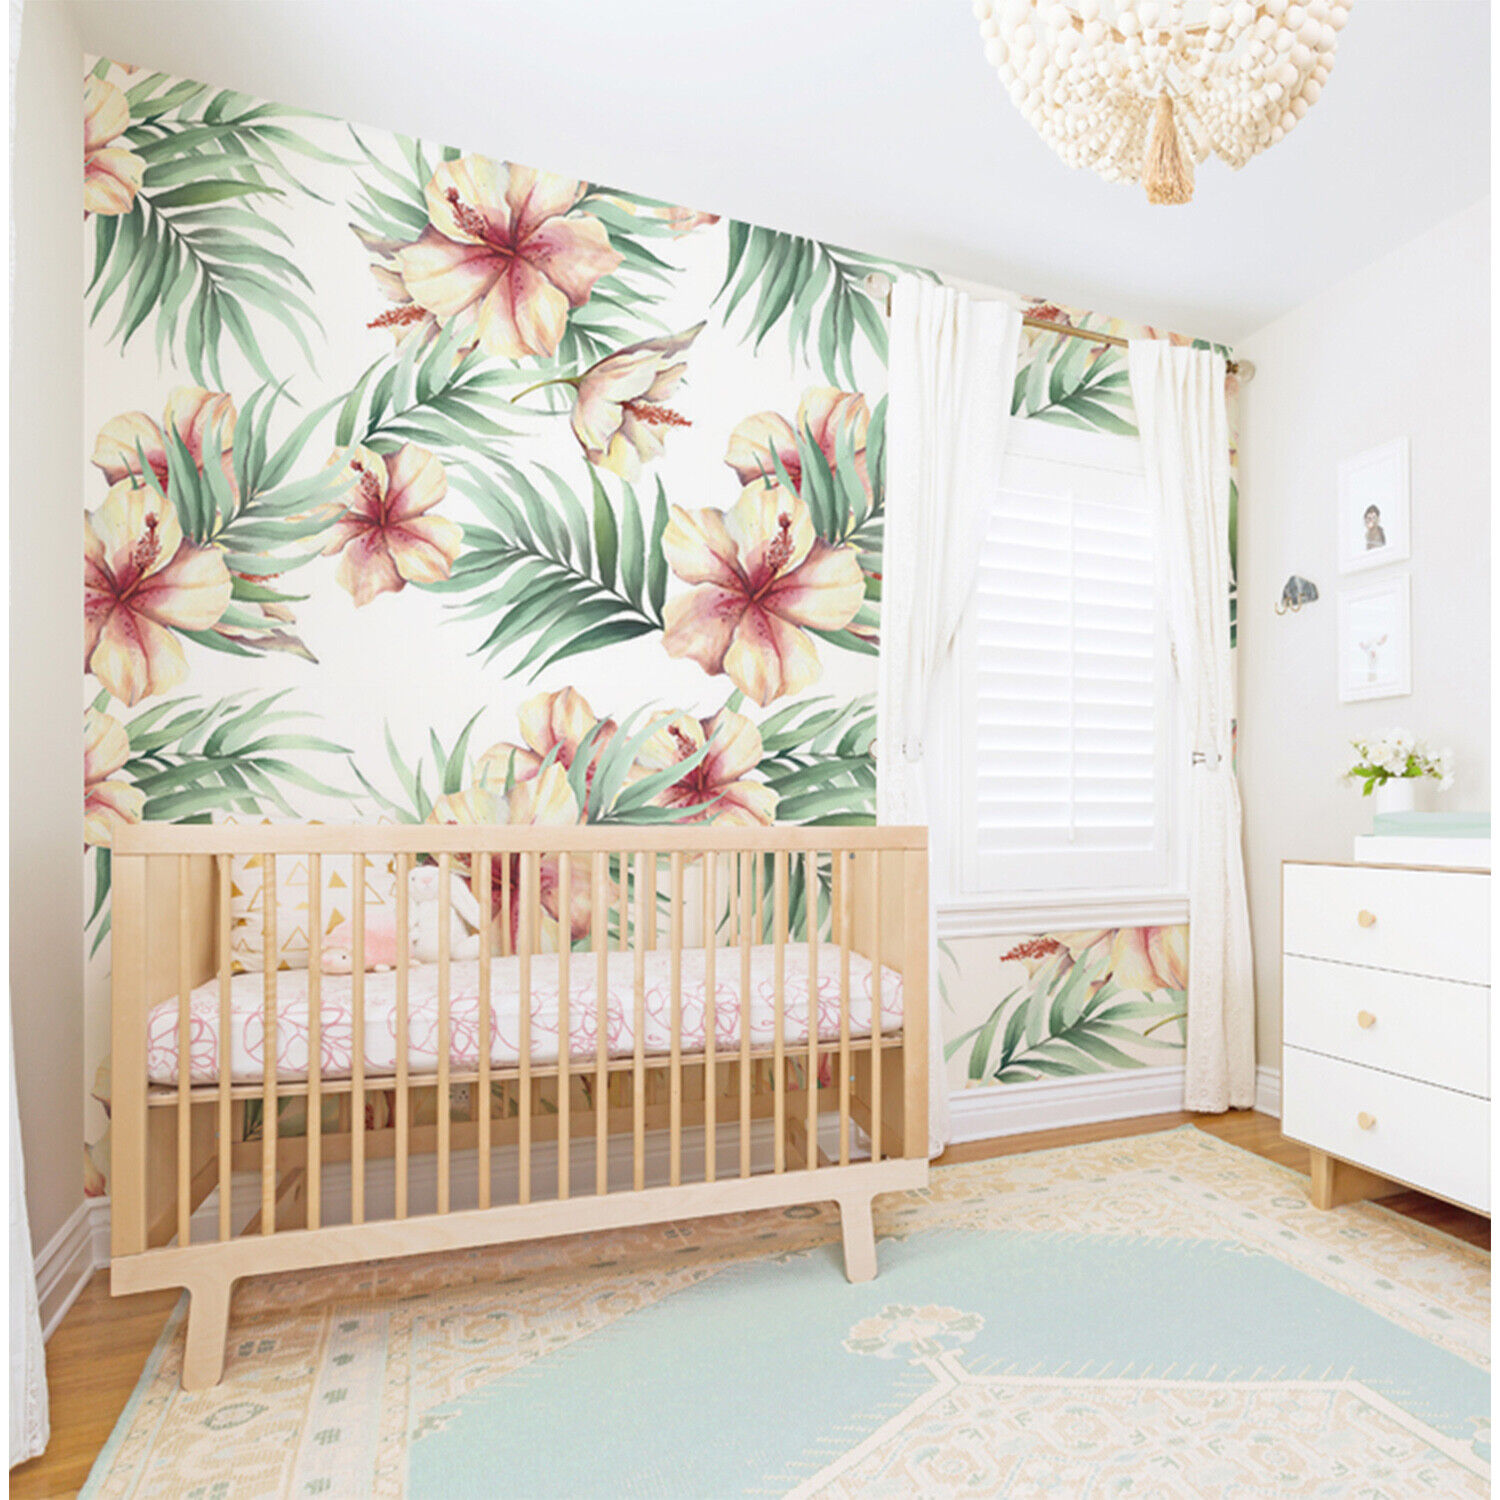 Hawaii Flowers Non-Woven wallpaper WaterFarbe wall mural Leaves Traditional